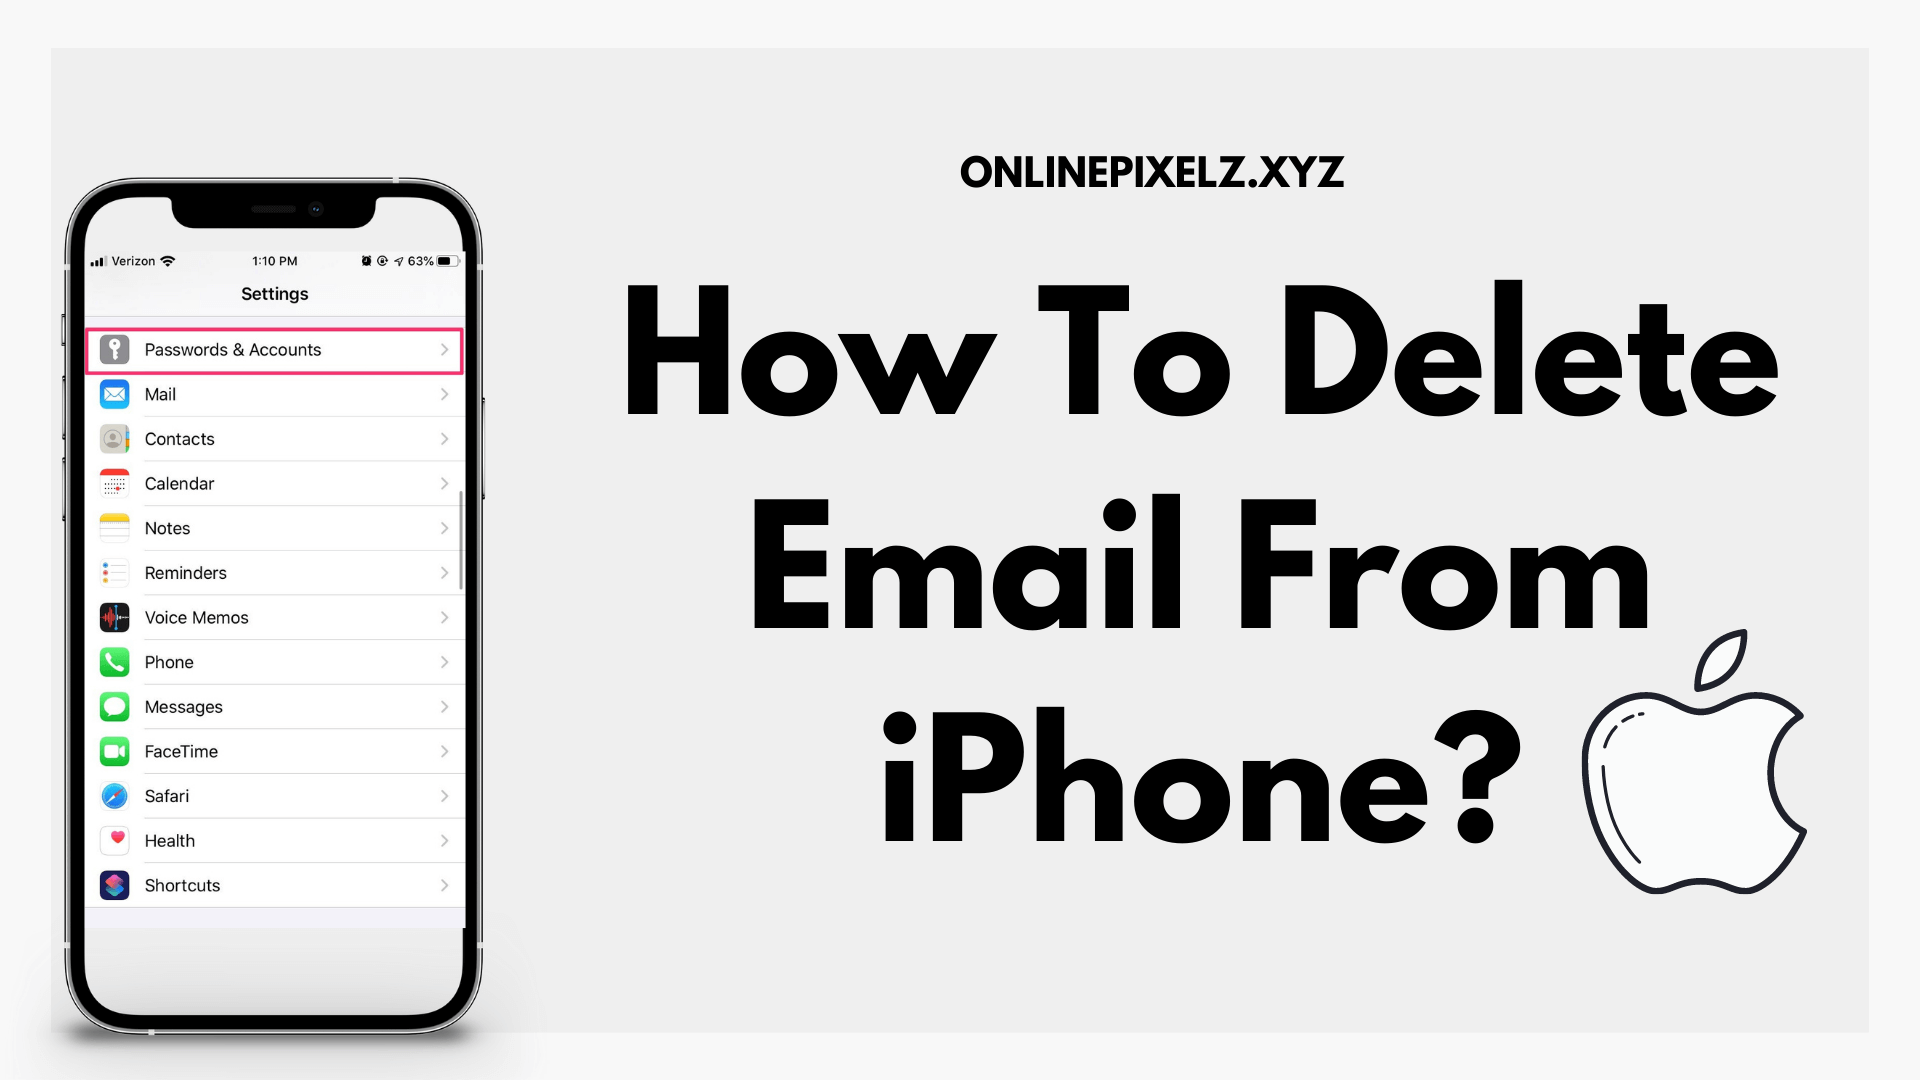 How To Delete Email From iPhone